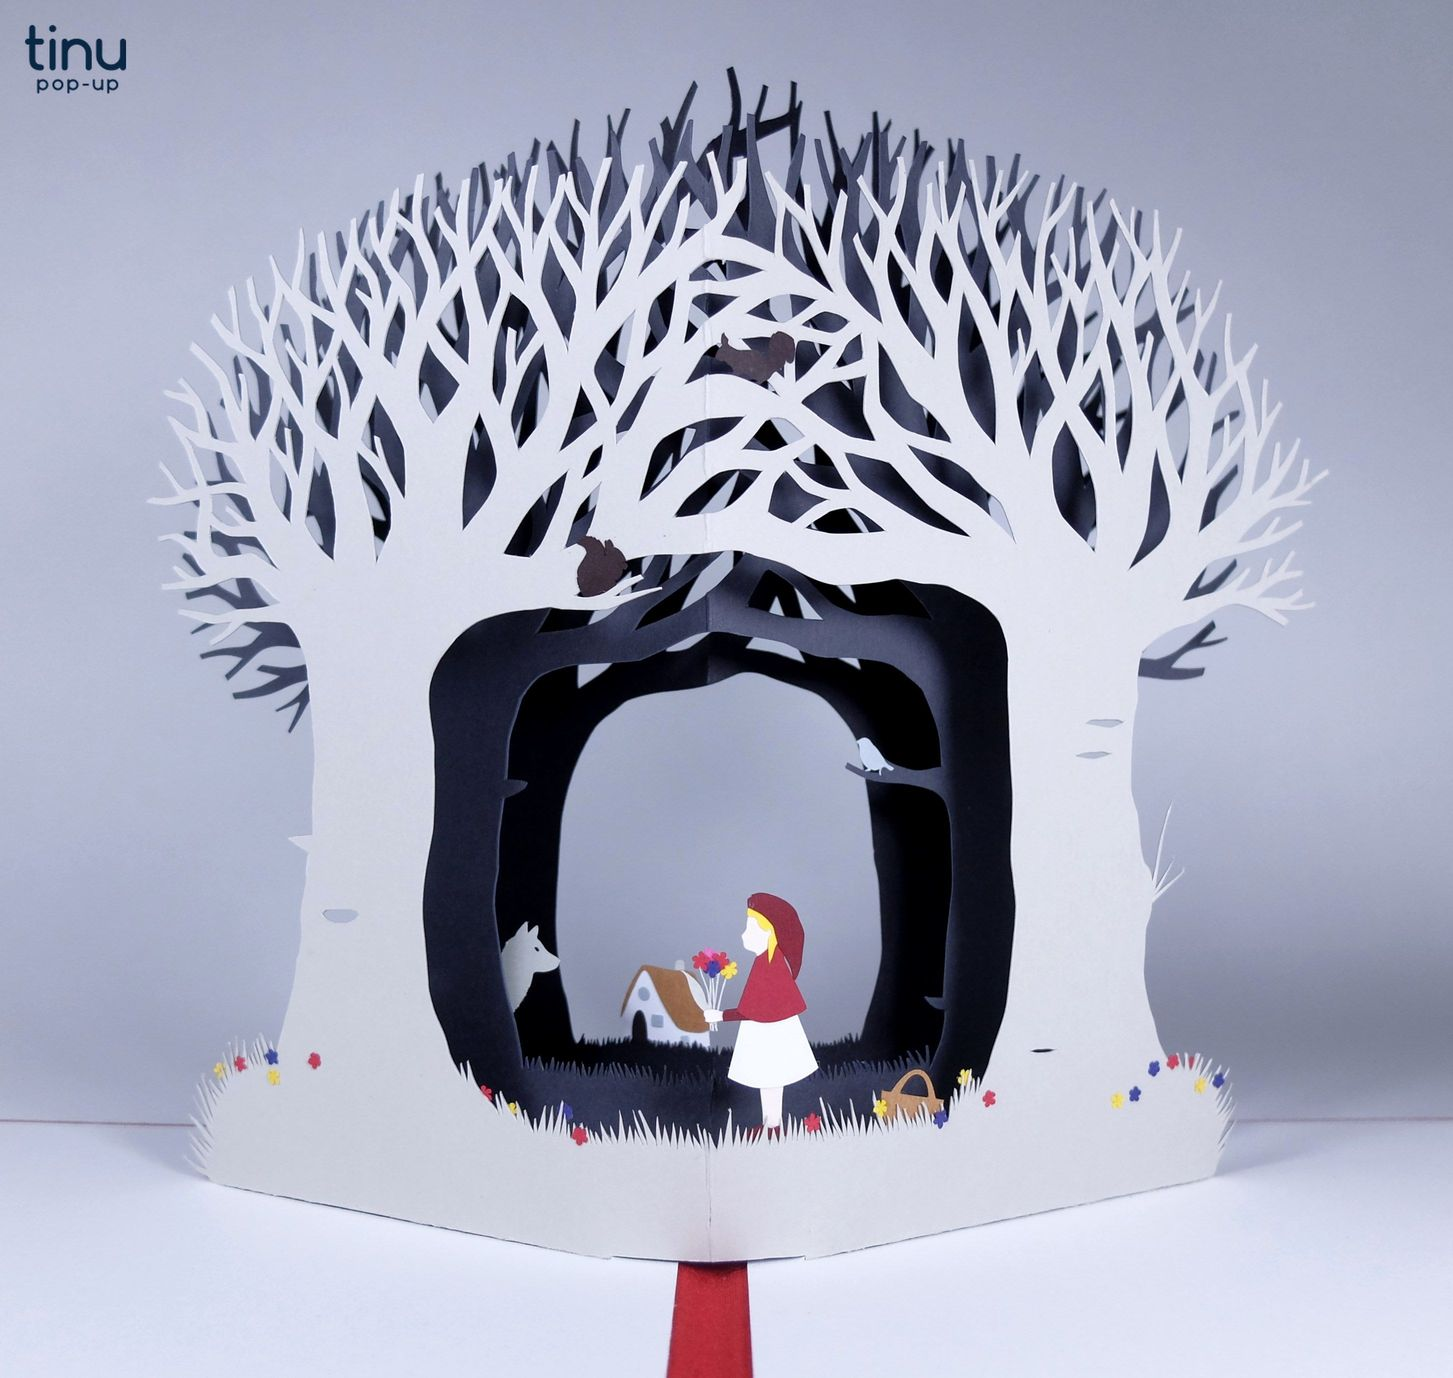 tinu site tinu pop up chapron rouge wolf loup papier paper 3D card popup